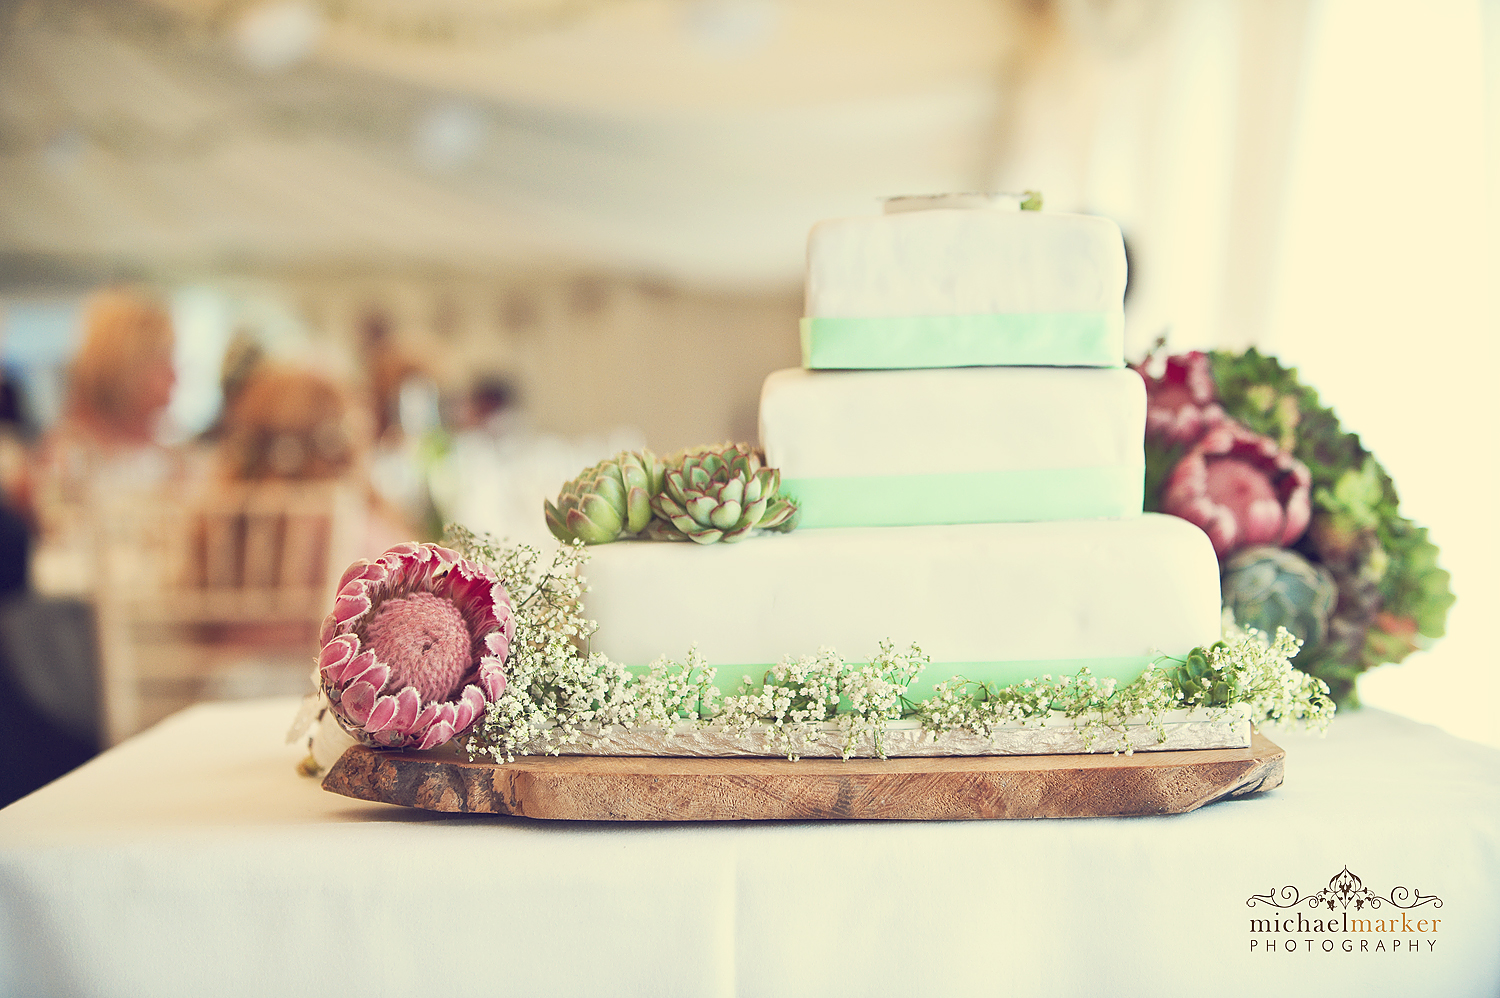 wedding cake decorated with Protea flowers at Deer Park wedding